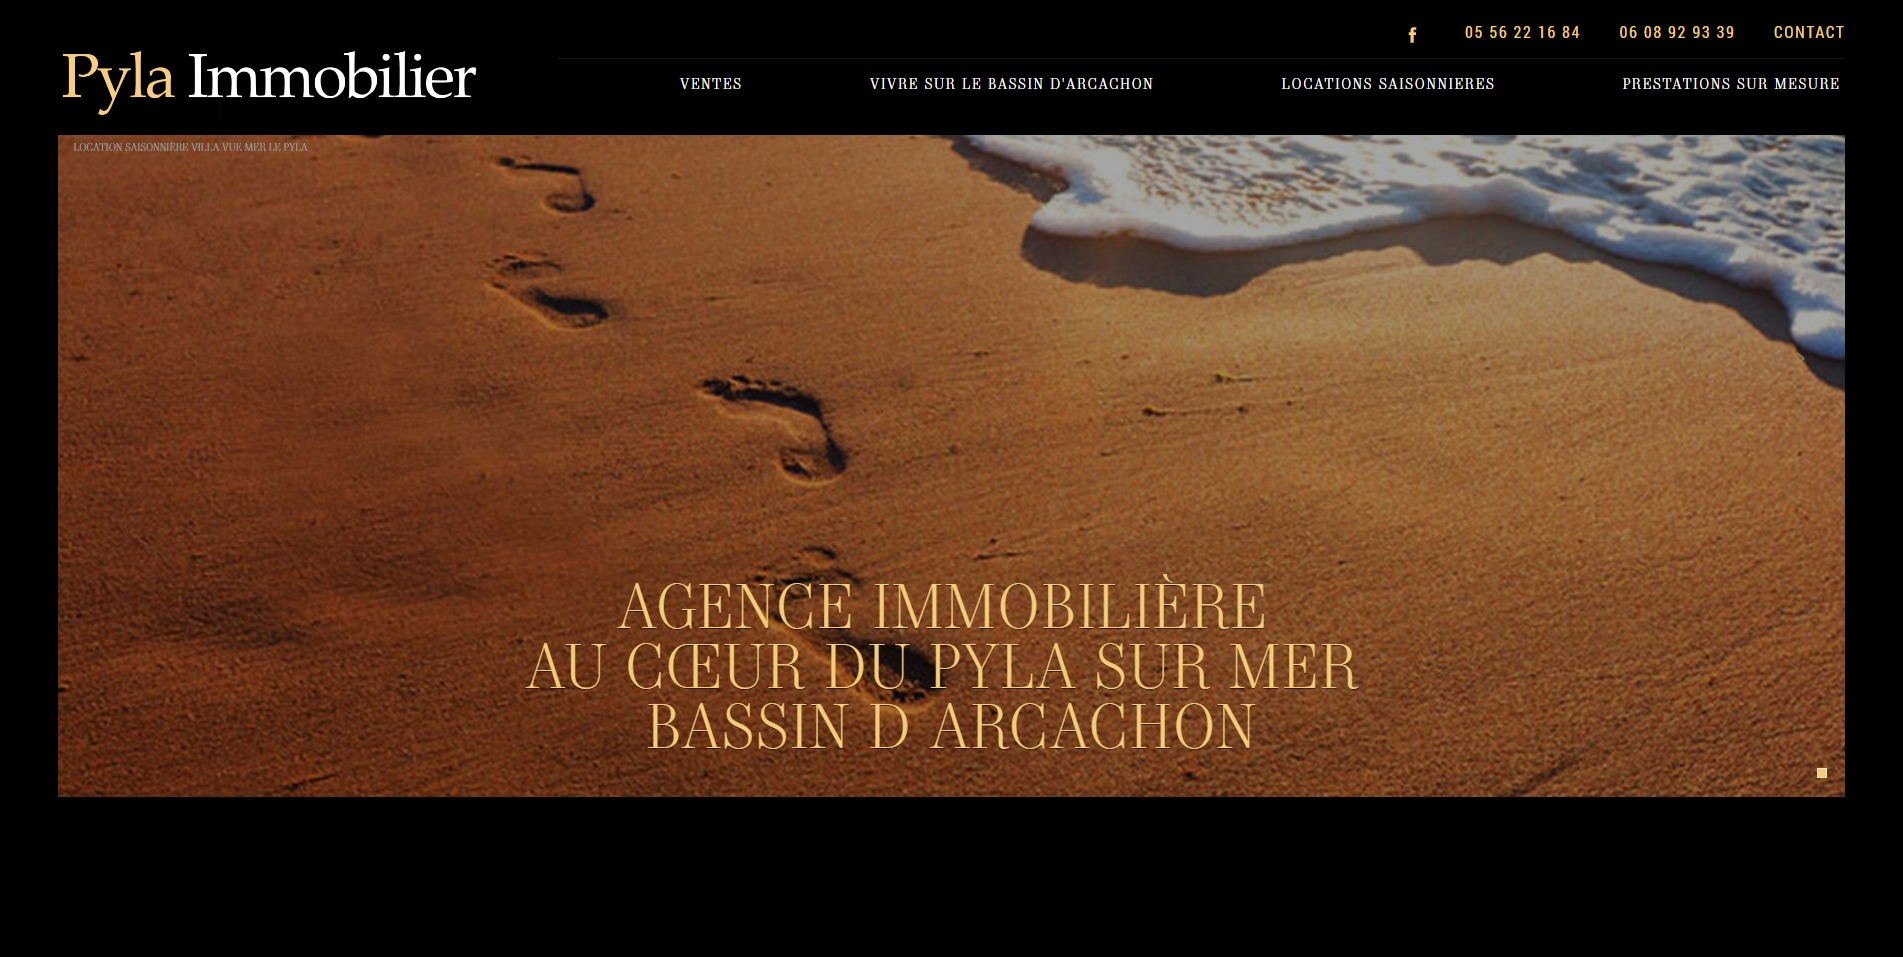 pyla immobilier